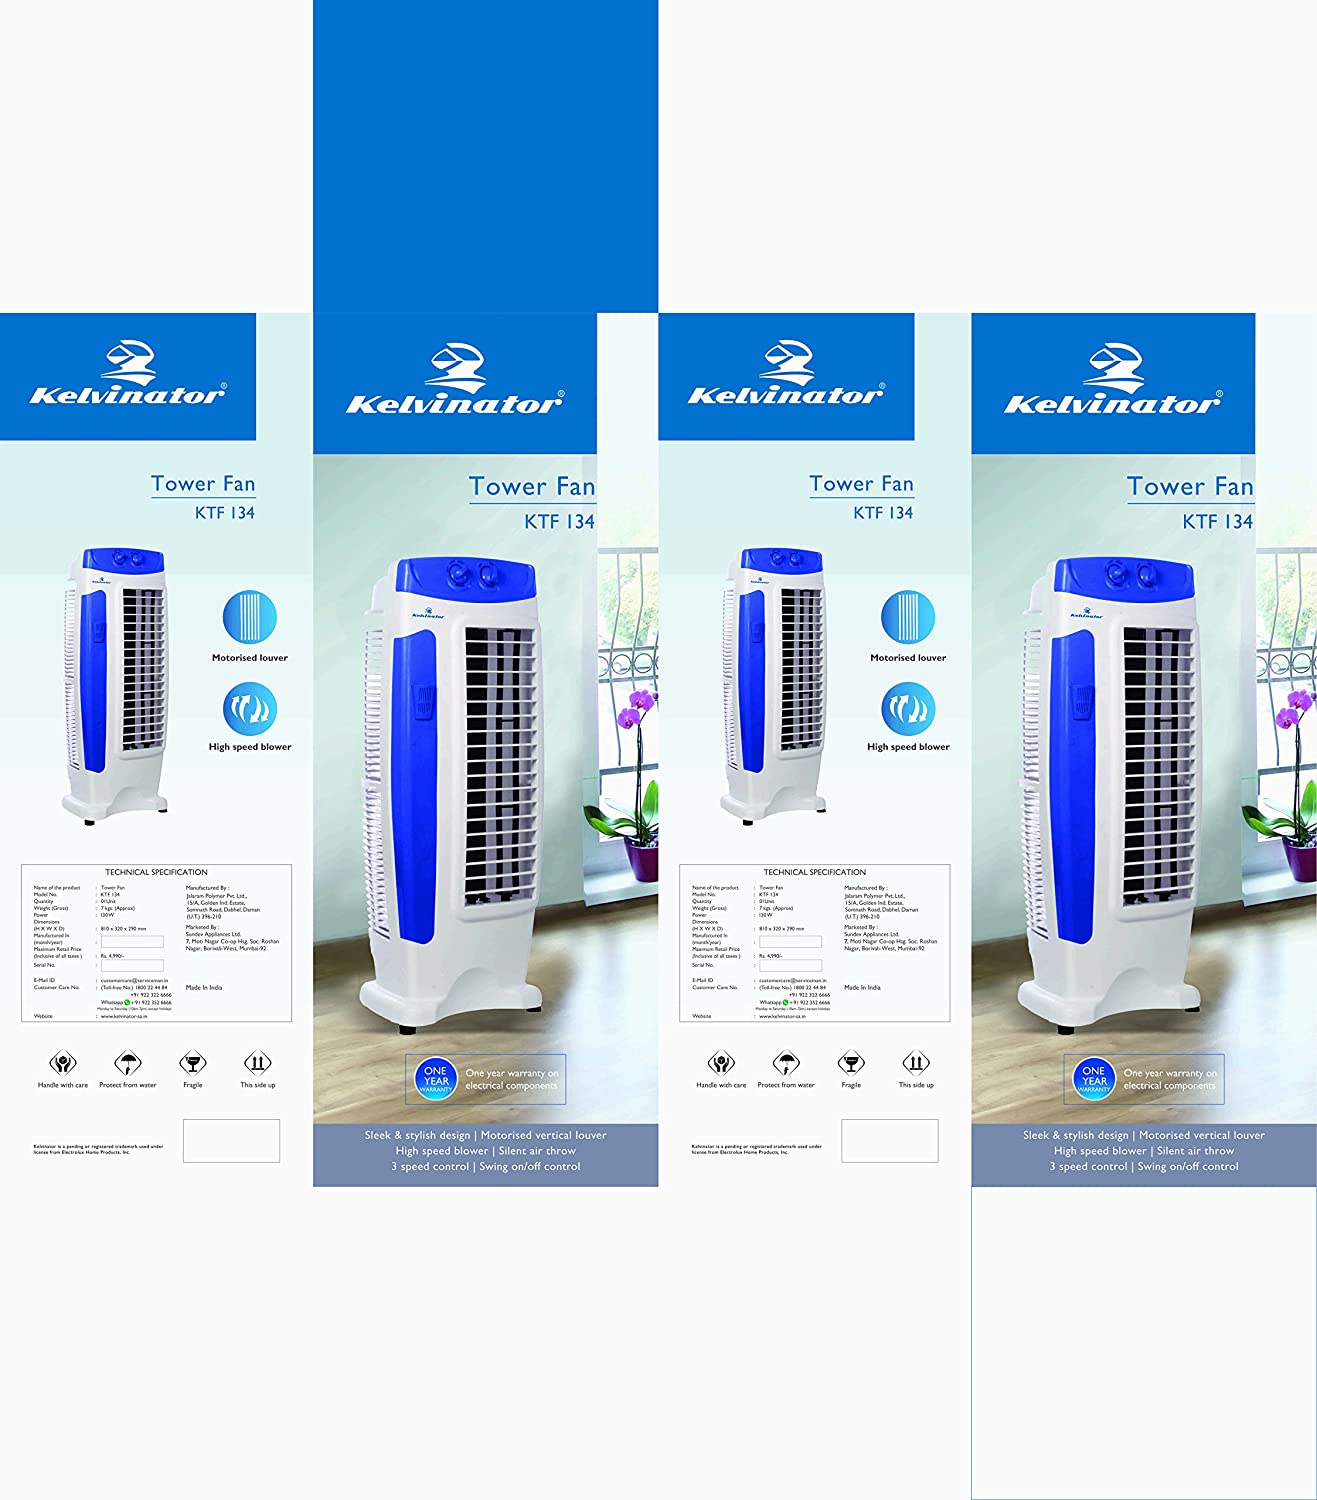 Buy Kelvinator Bms Ktf Cool Breeze Tower Fan White Online At Low Range Wiring Diagram Prices In India